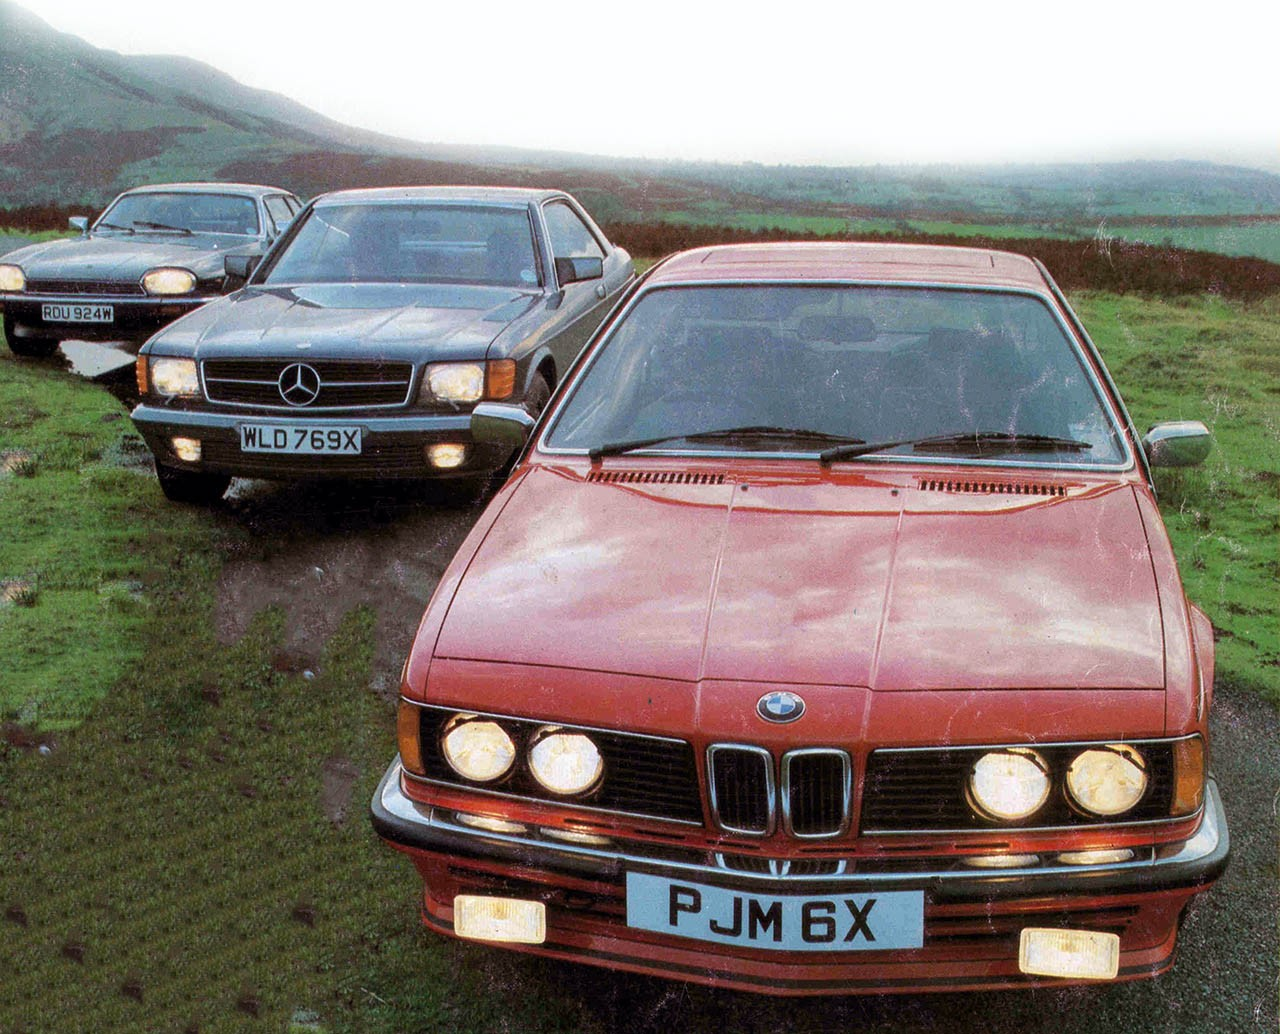 Giant drive retro luxury Coupe - 1983 BMW 635CSi E24 vs. Jaguar XJS HE and  Mercedes-Benz 500SEC C126 - Drive-My Blogs - Drive